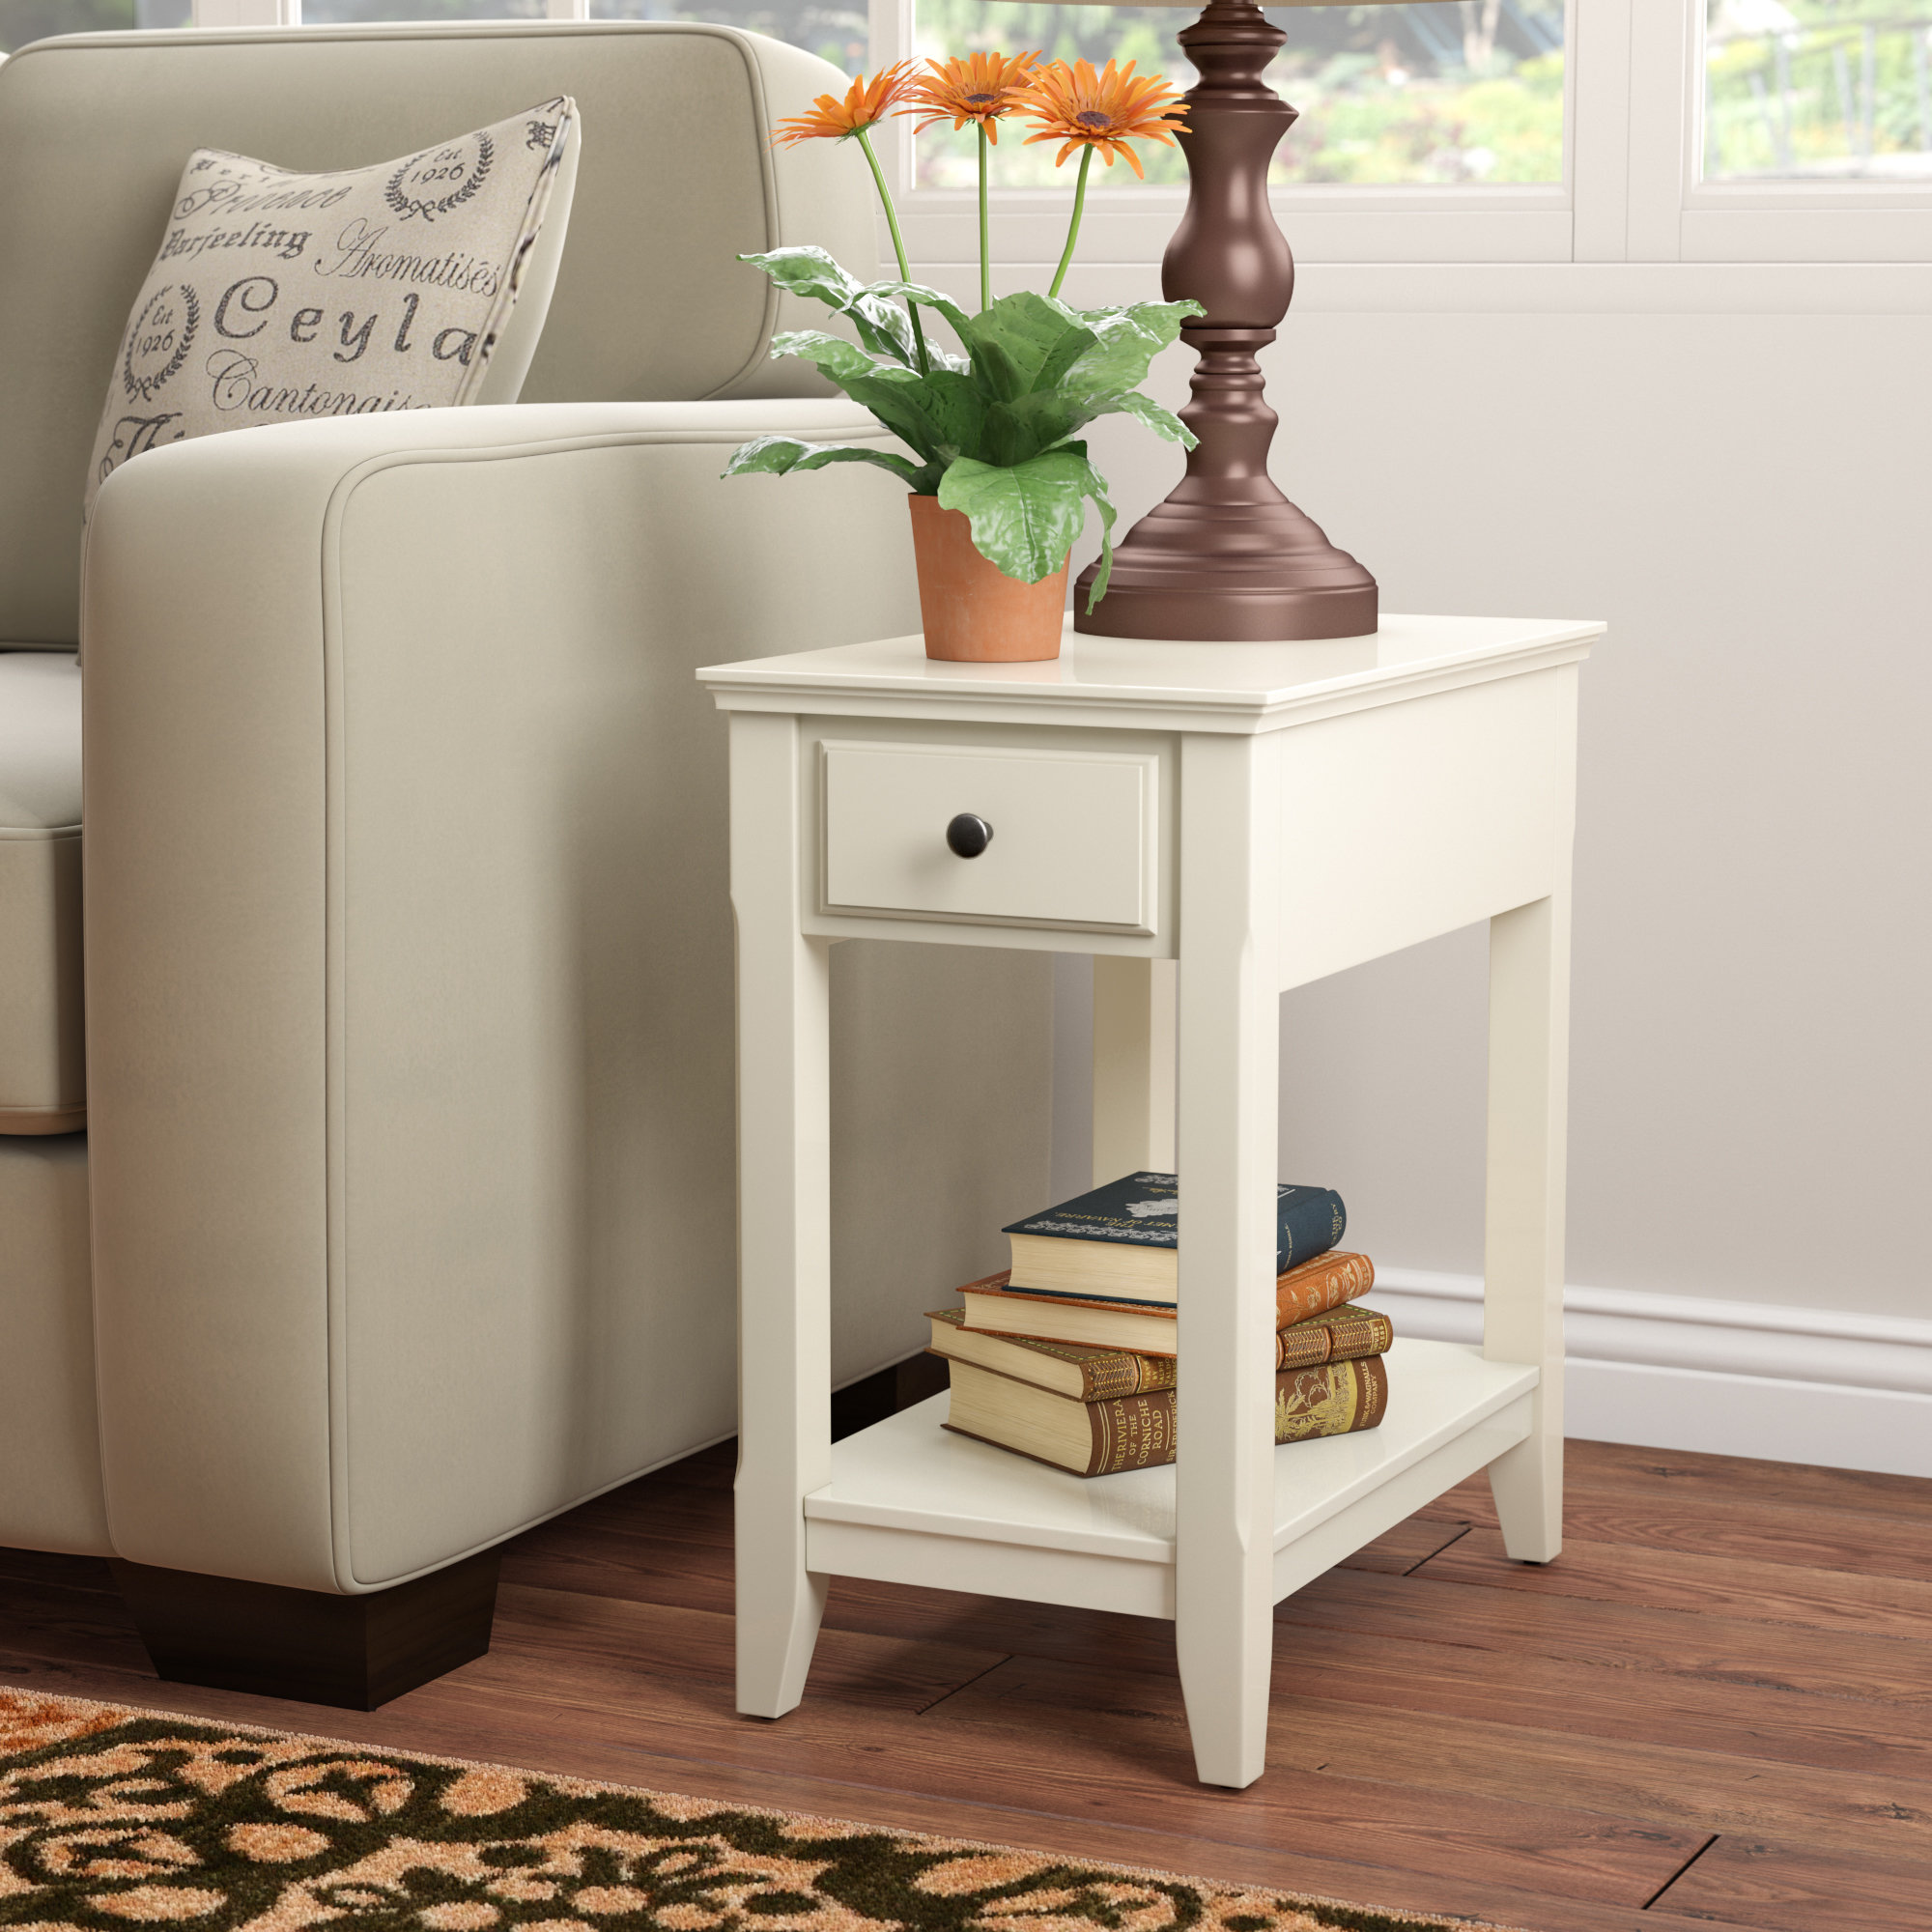 andover mills hillyard end table with storage reviews room essentials accent pier one dining jcpenney furniture clearance pine chairs lamps barn door construction tablecloth for